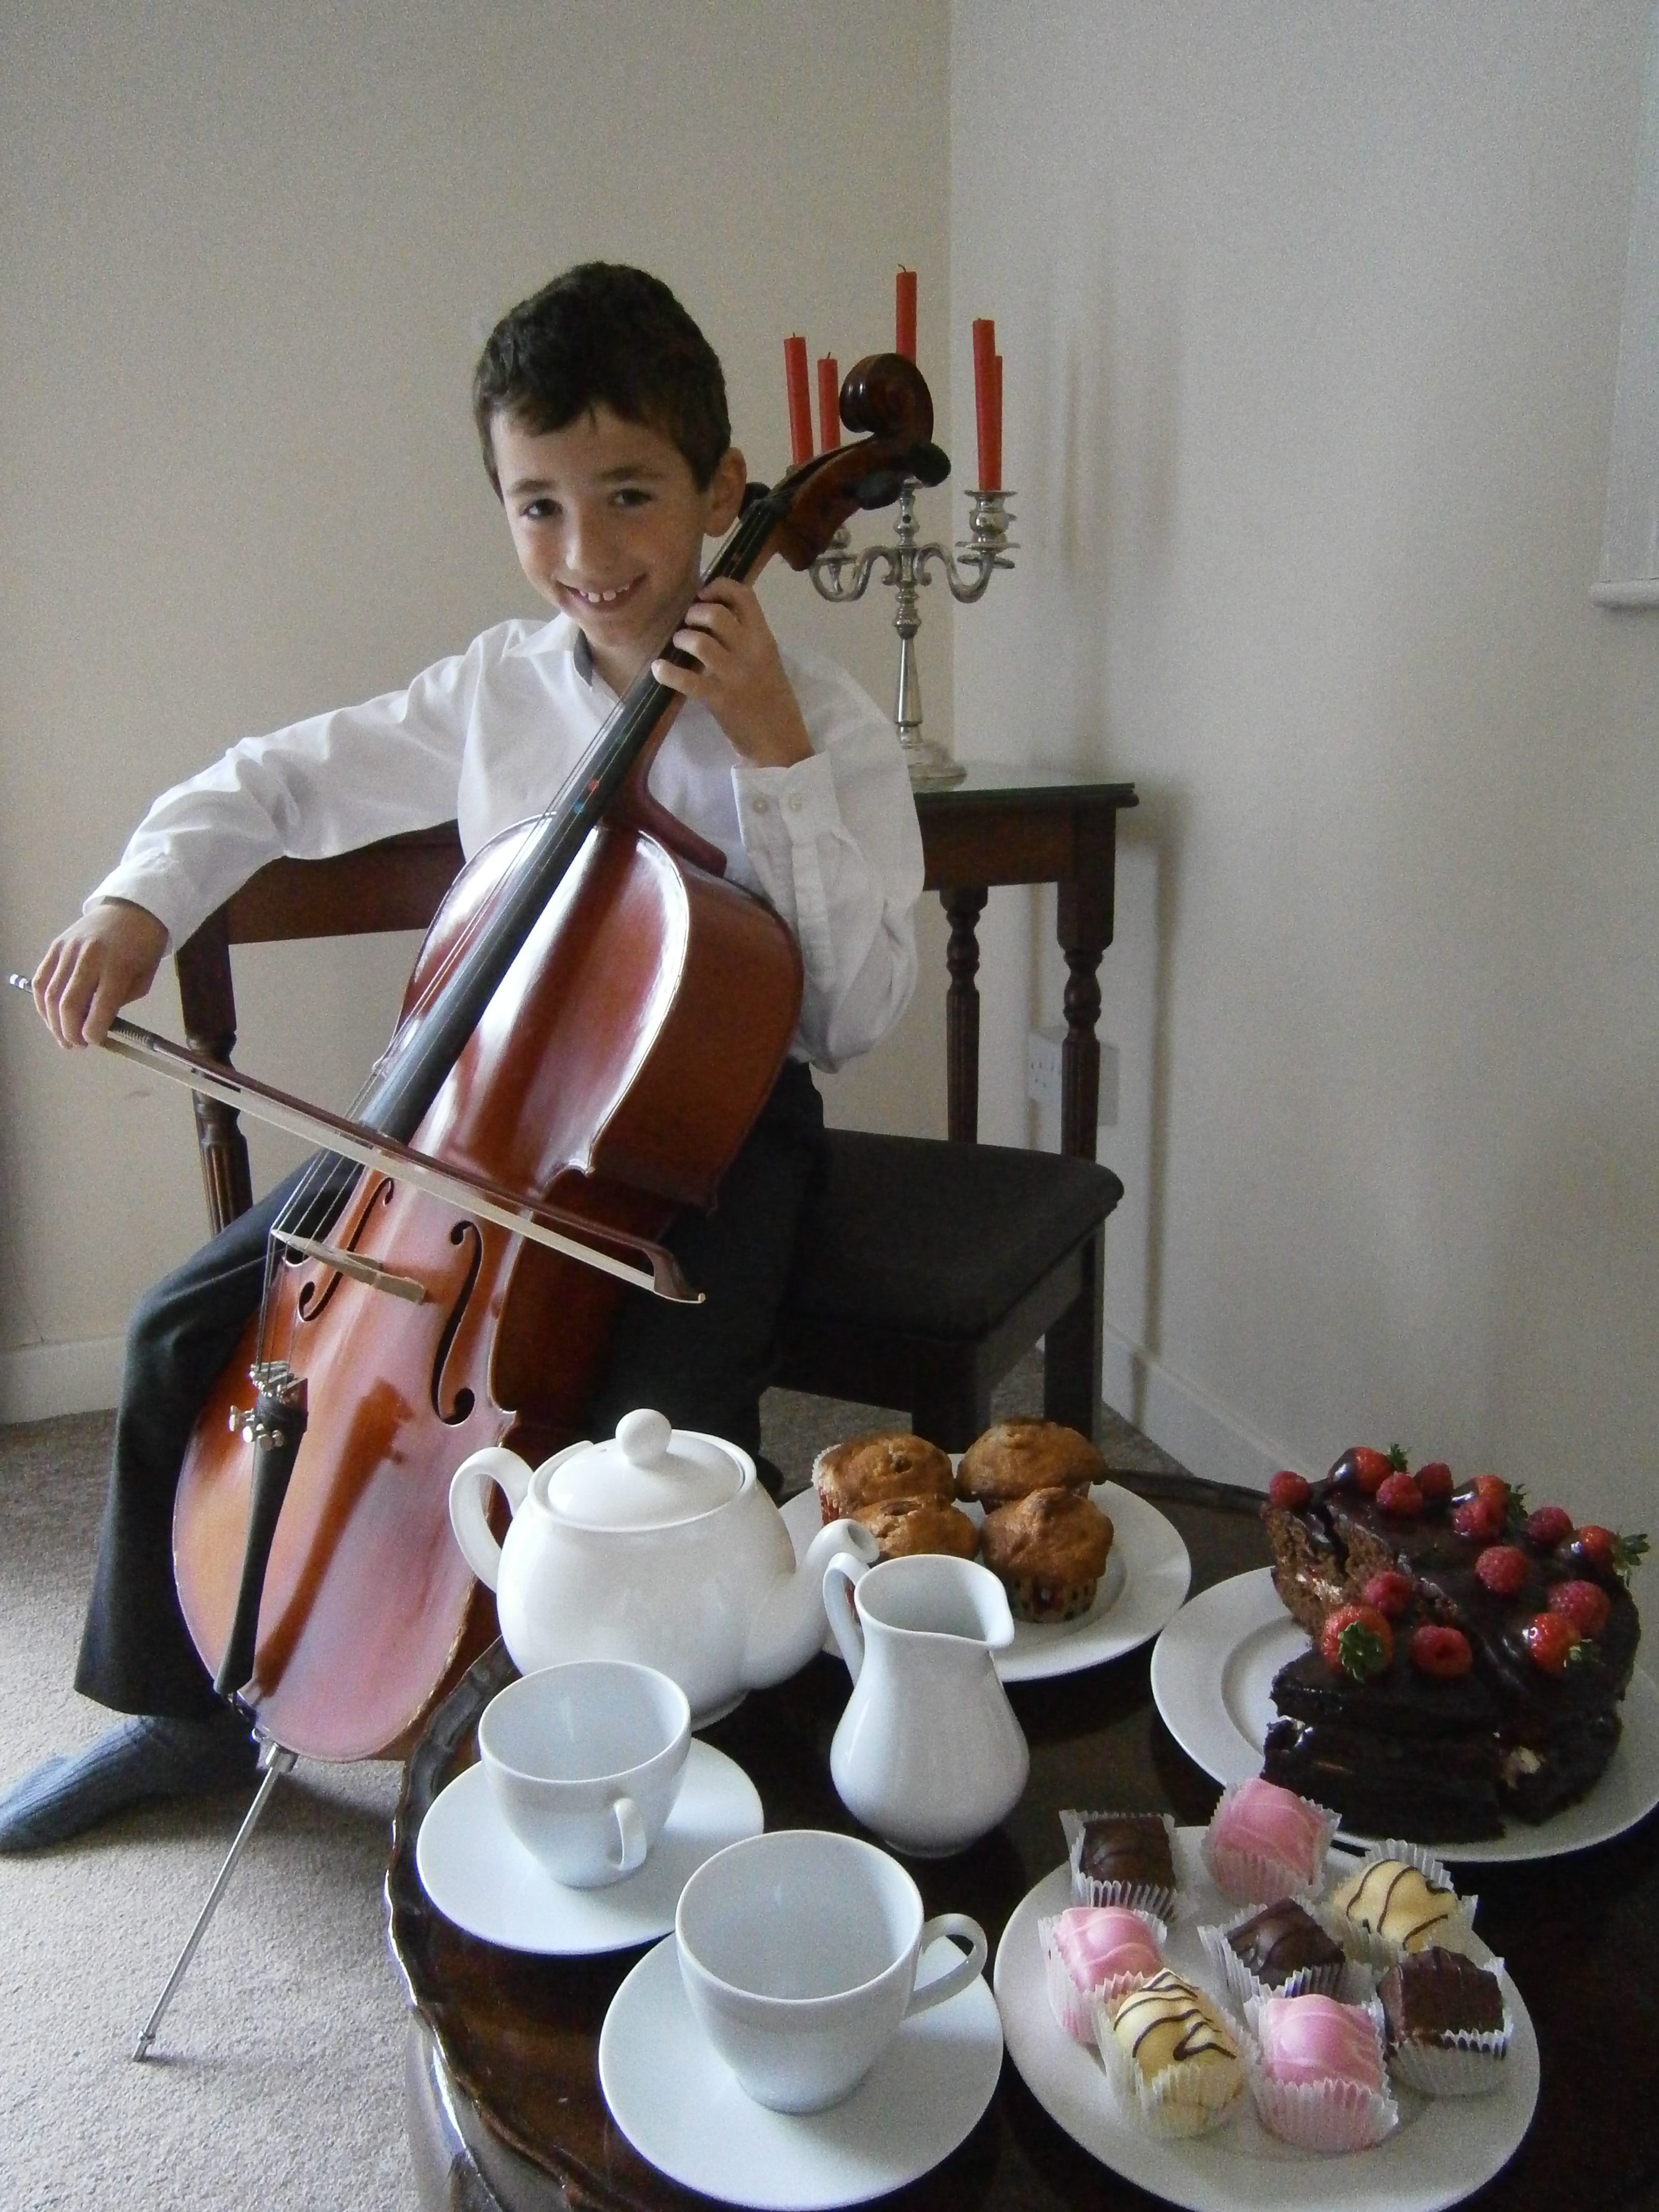 Home Instead Stratford owner's son Robert Maundrill playing the cello for residents at the Waverley Day Centre